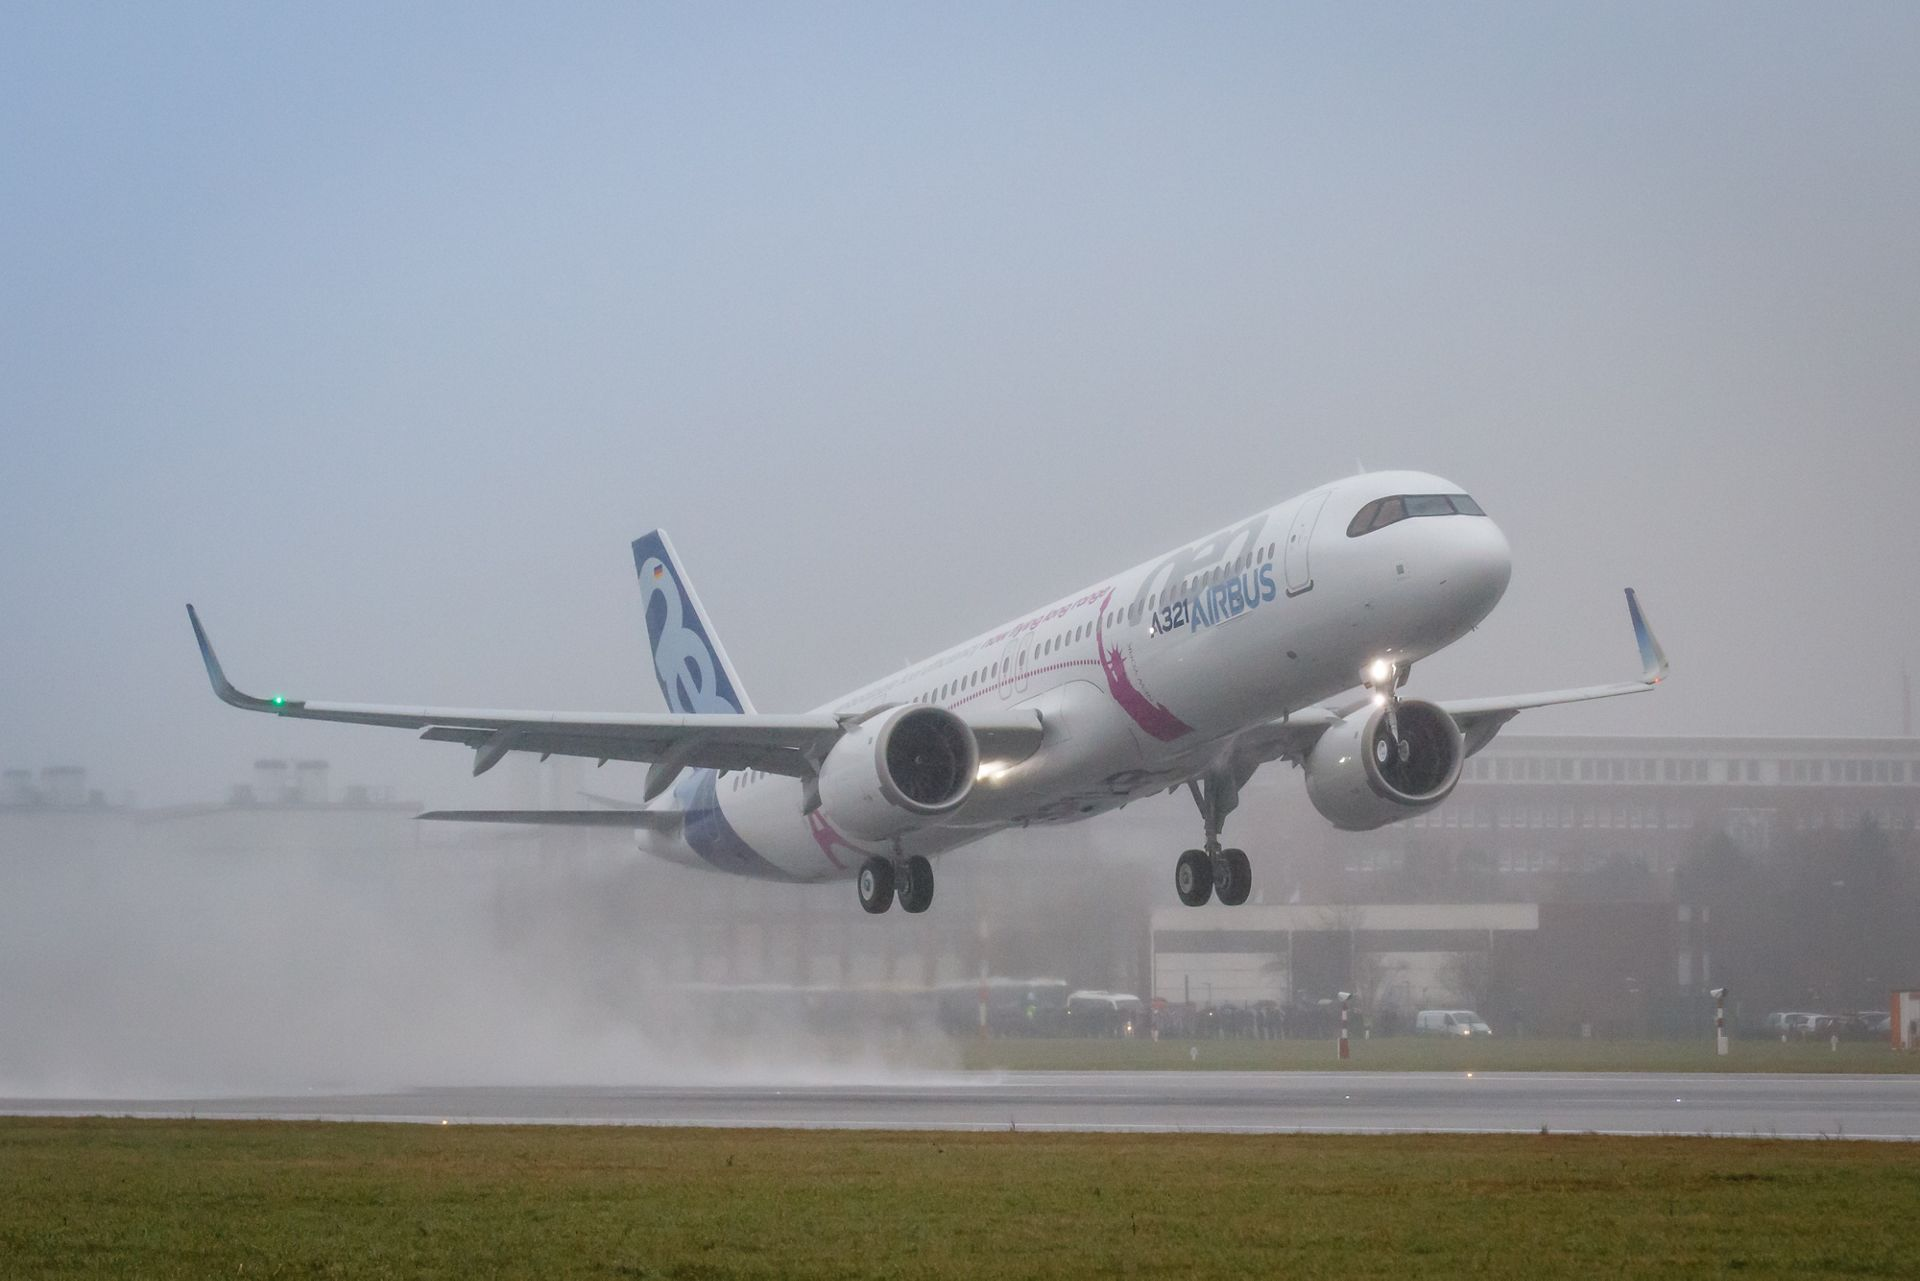 31 Press Conference >> First A321LR takes to the skies for its maiden flight